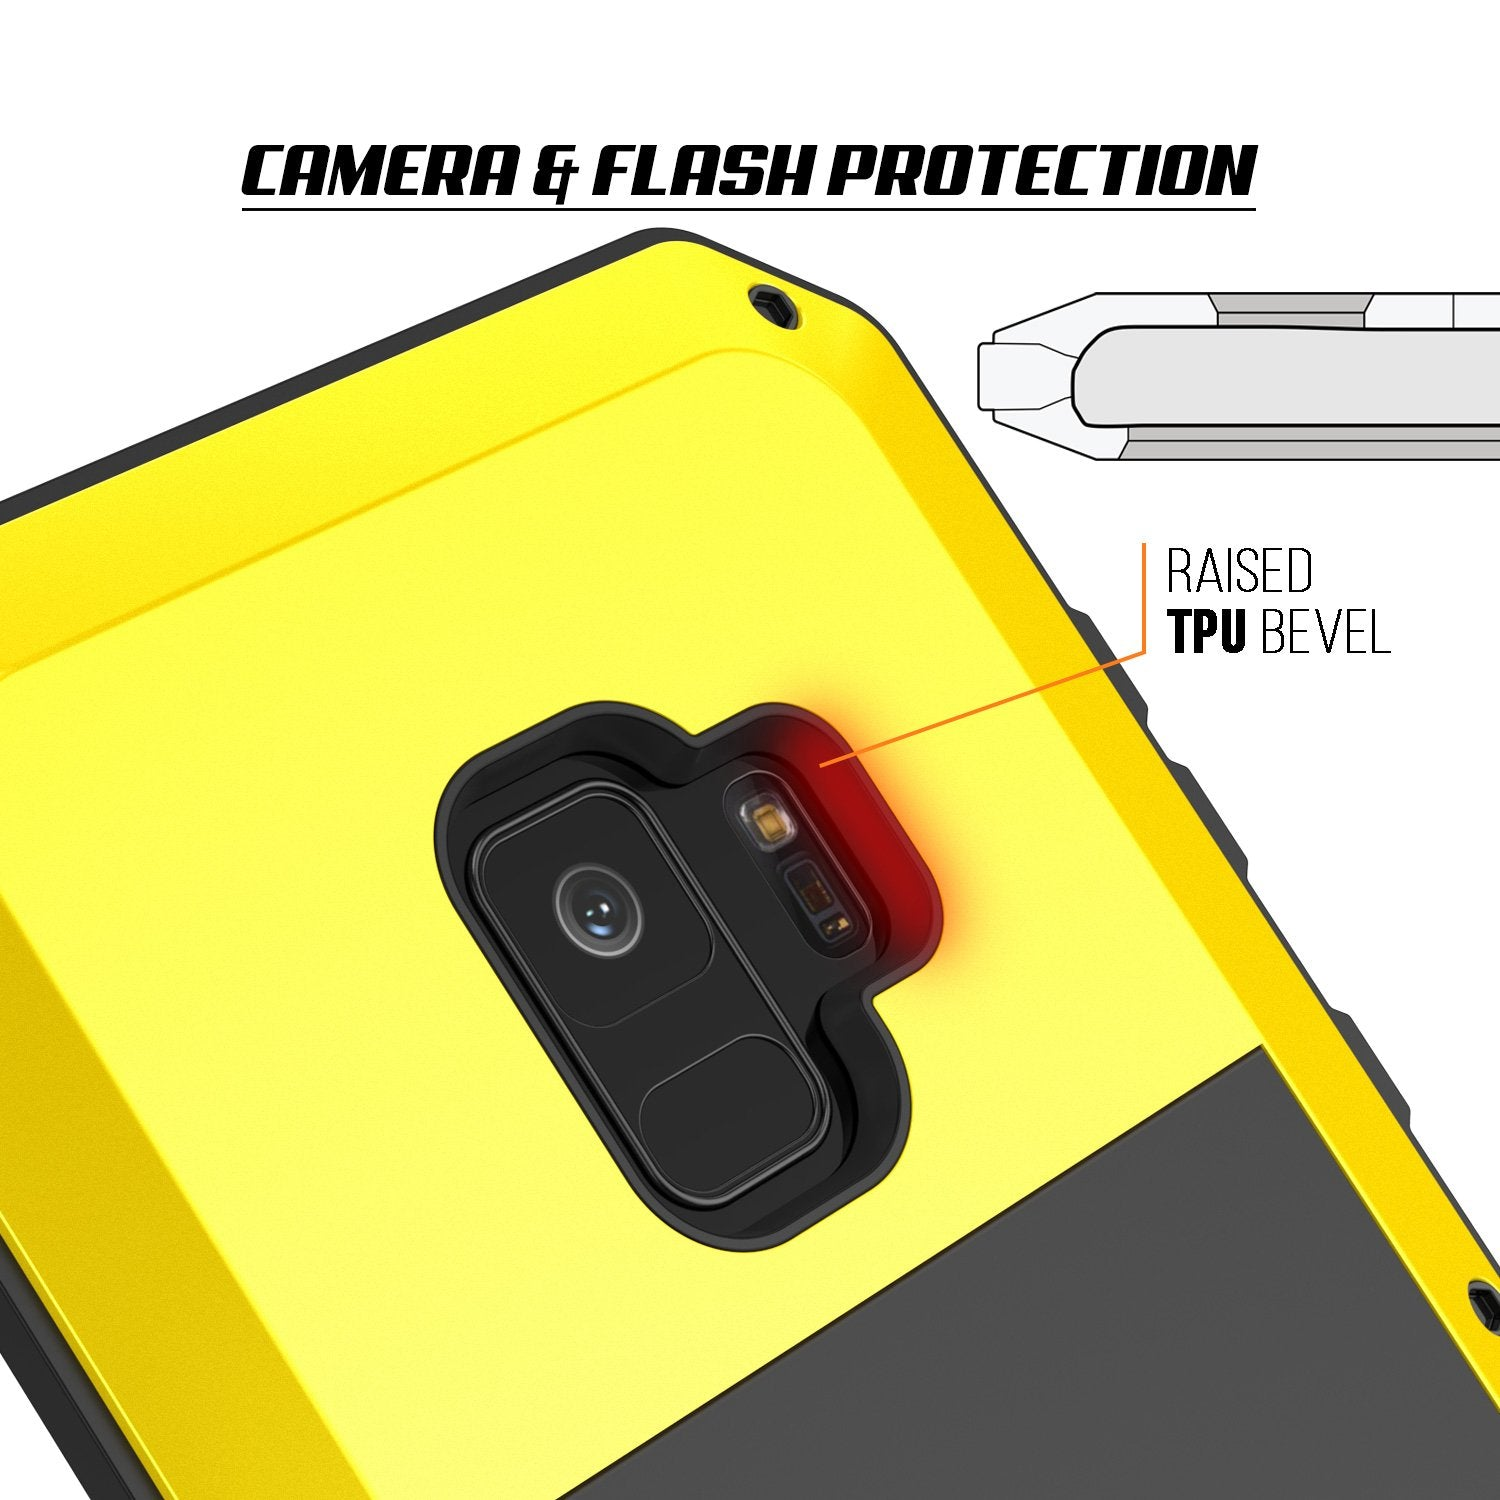 Galaxy S9 Metal Case, Heavy Duty Military Grade Rugged Armor Cover [shock proof] Hybrid Full Body Hard Aluminum & TPU Design [non slip] W/ Prime Drop Protection for Samsung Galaxy S9 [Neon]